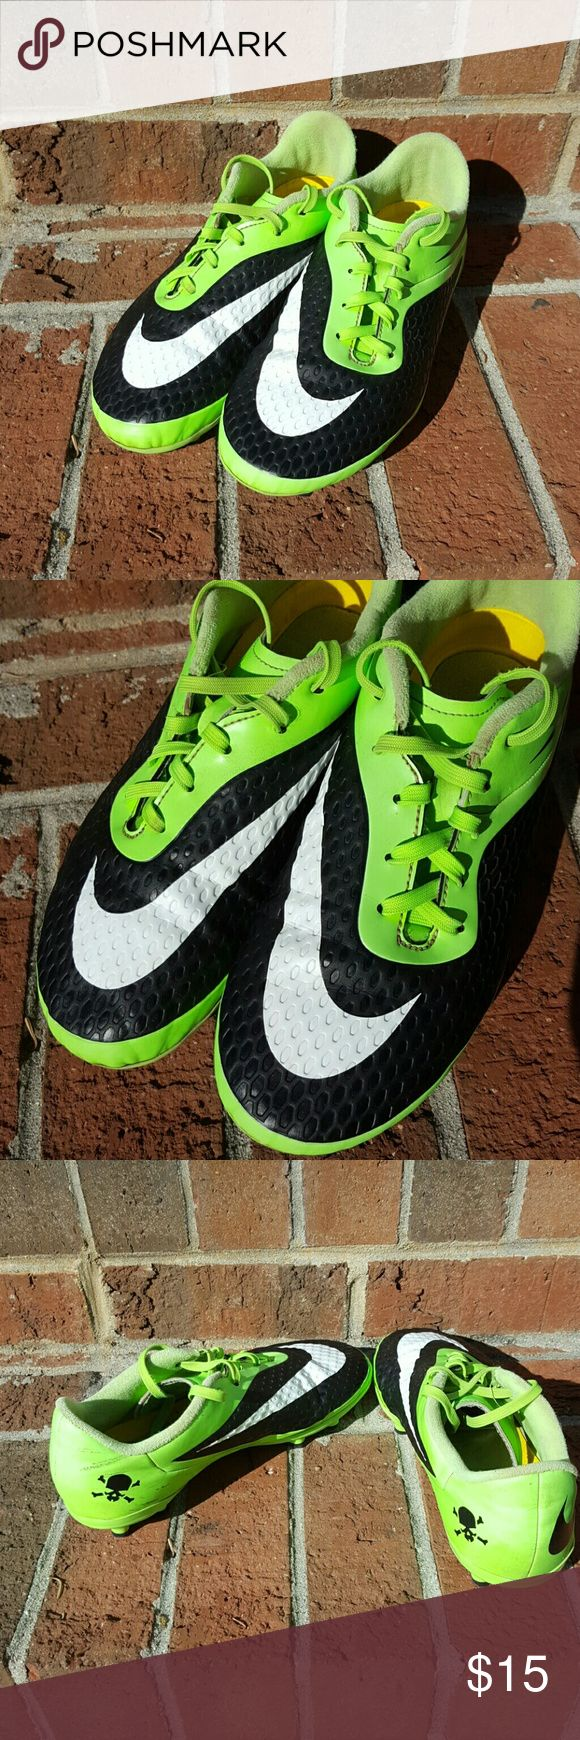 Nike turf shoes  - kids GUC. Skull and crossbones detail inside at back. Green and black. Scuff on inside heel. Nike Shoes